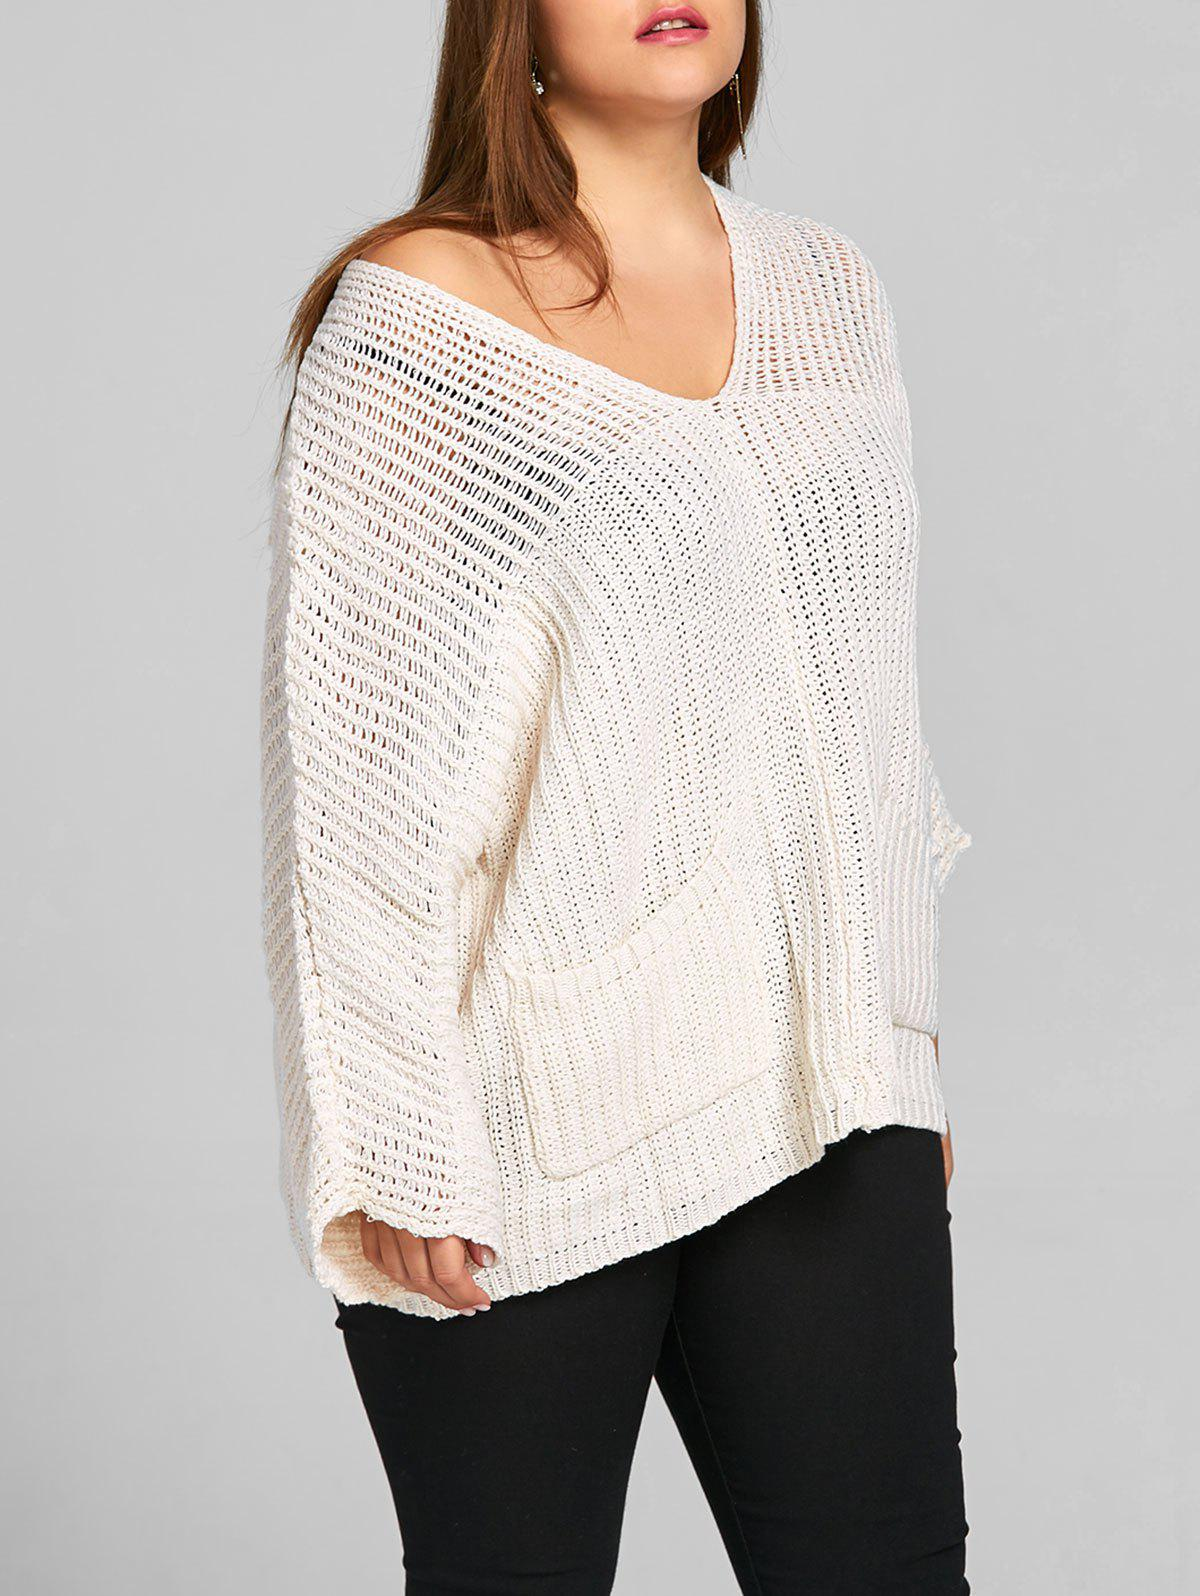 Batwing Sleeve Plus Size Chunky Sweater - OFF WHITE ONE SIZE